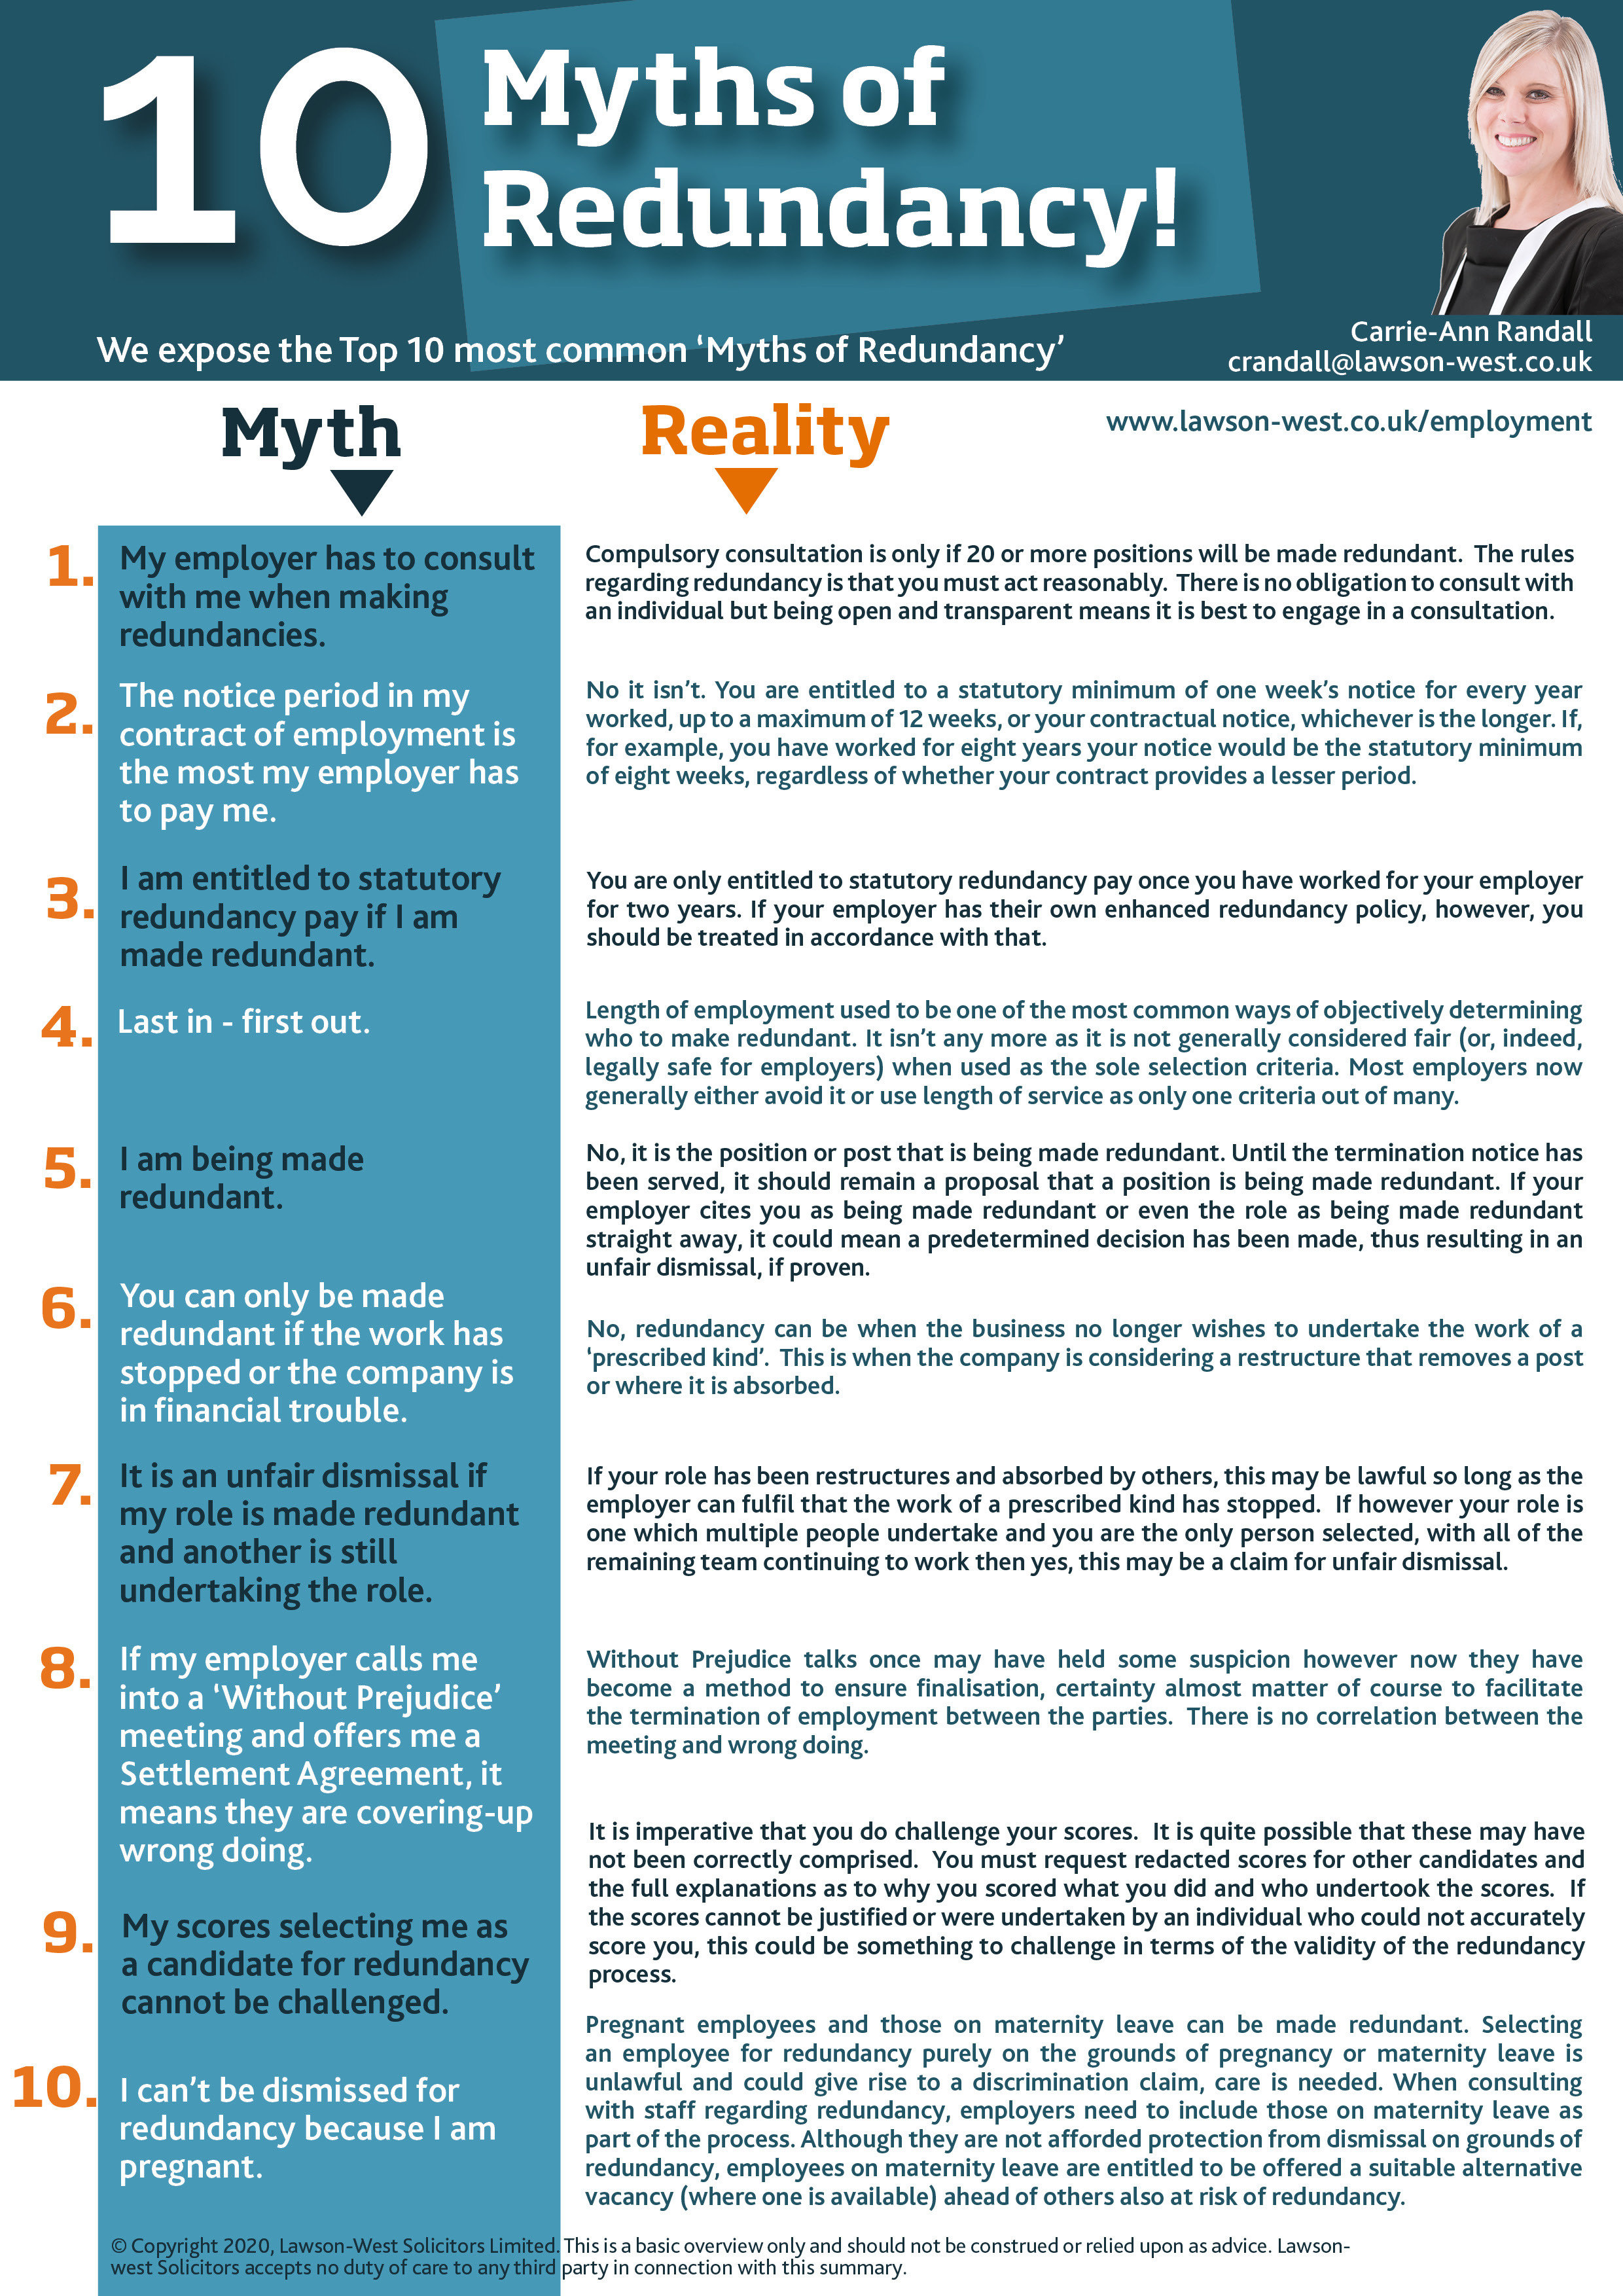 10 Myths of Redundancy, employment law & being made redundant